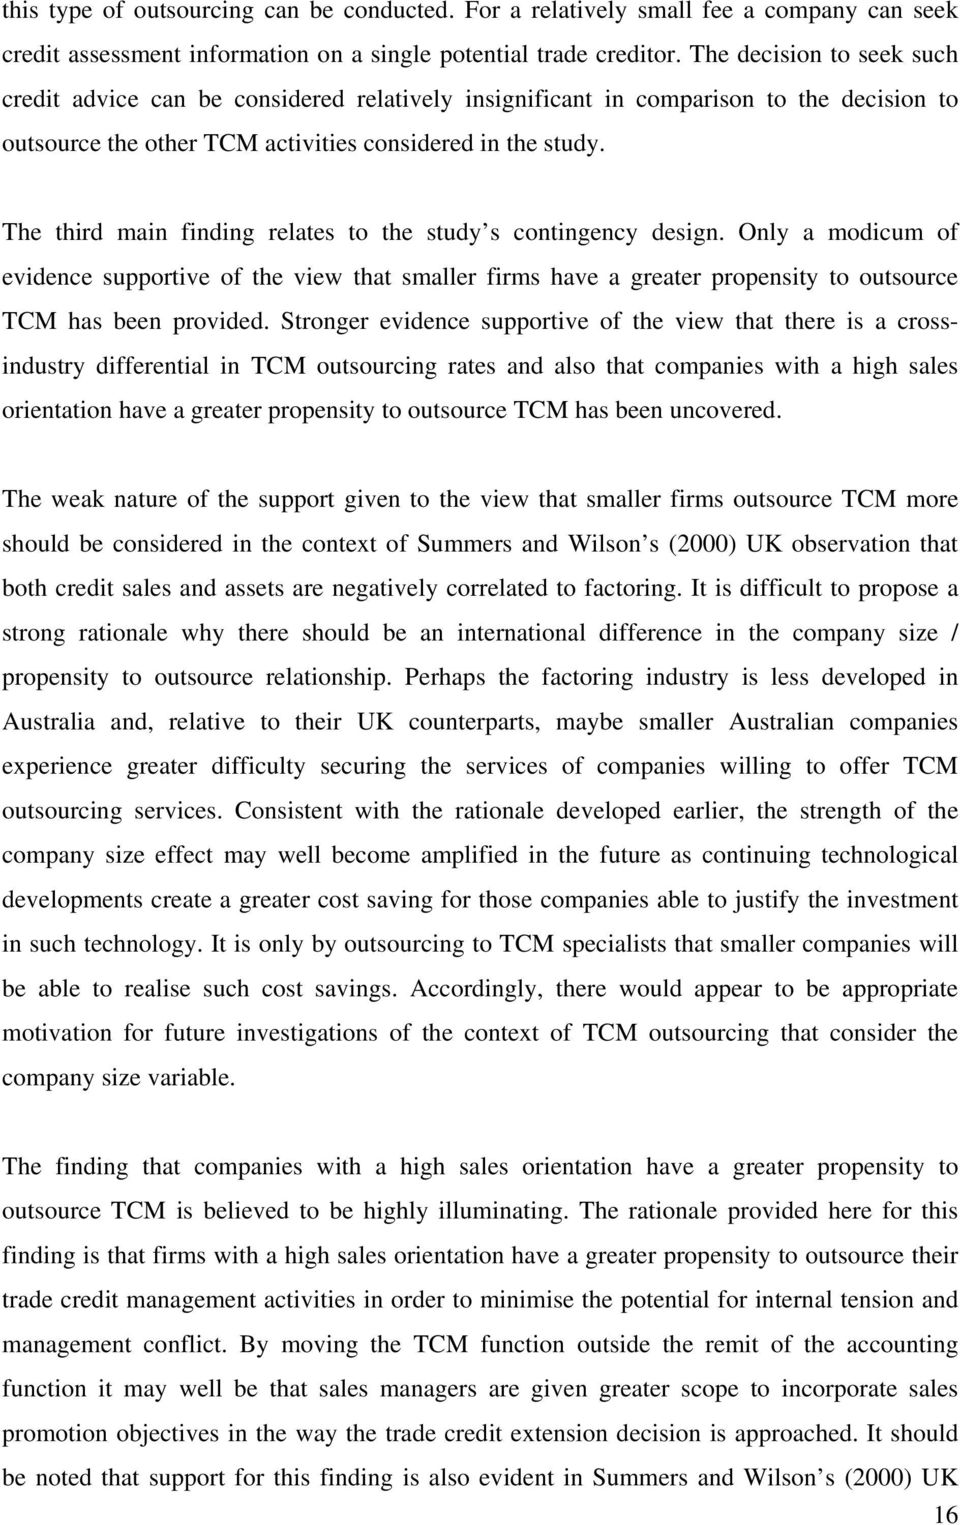 The third main finding relates to the study s contingency design. Only a modicum of evidence supportive of the view that smaller firms have a greater propensity to outsource TCM has been provided.